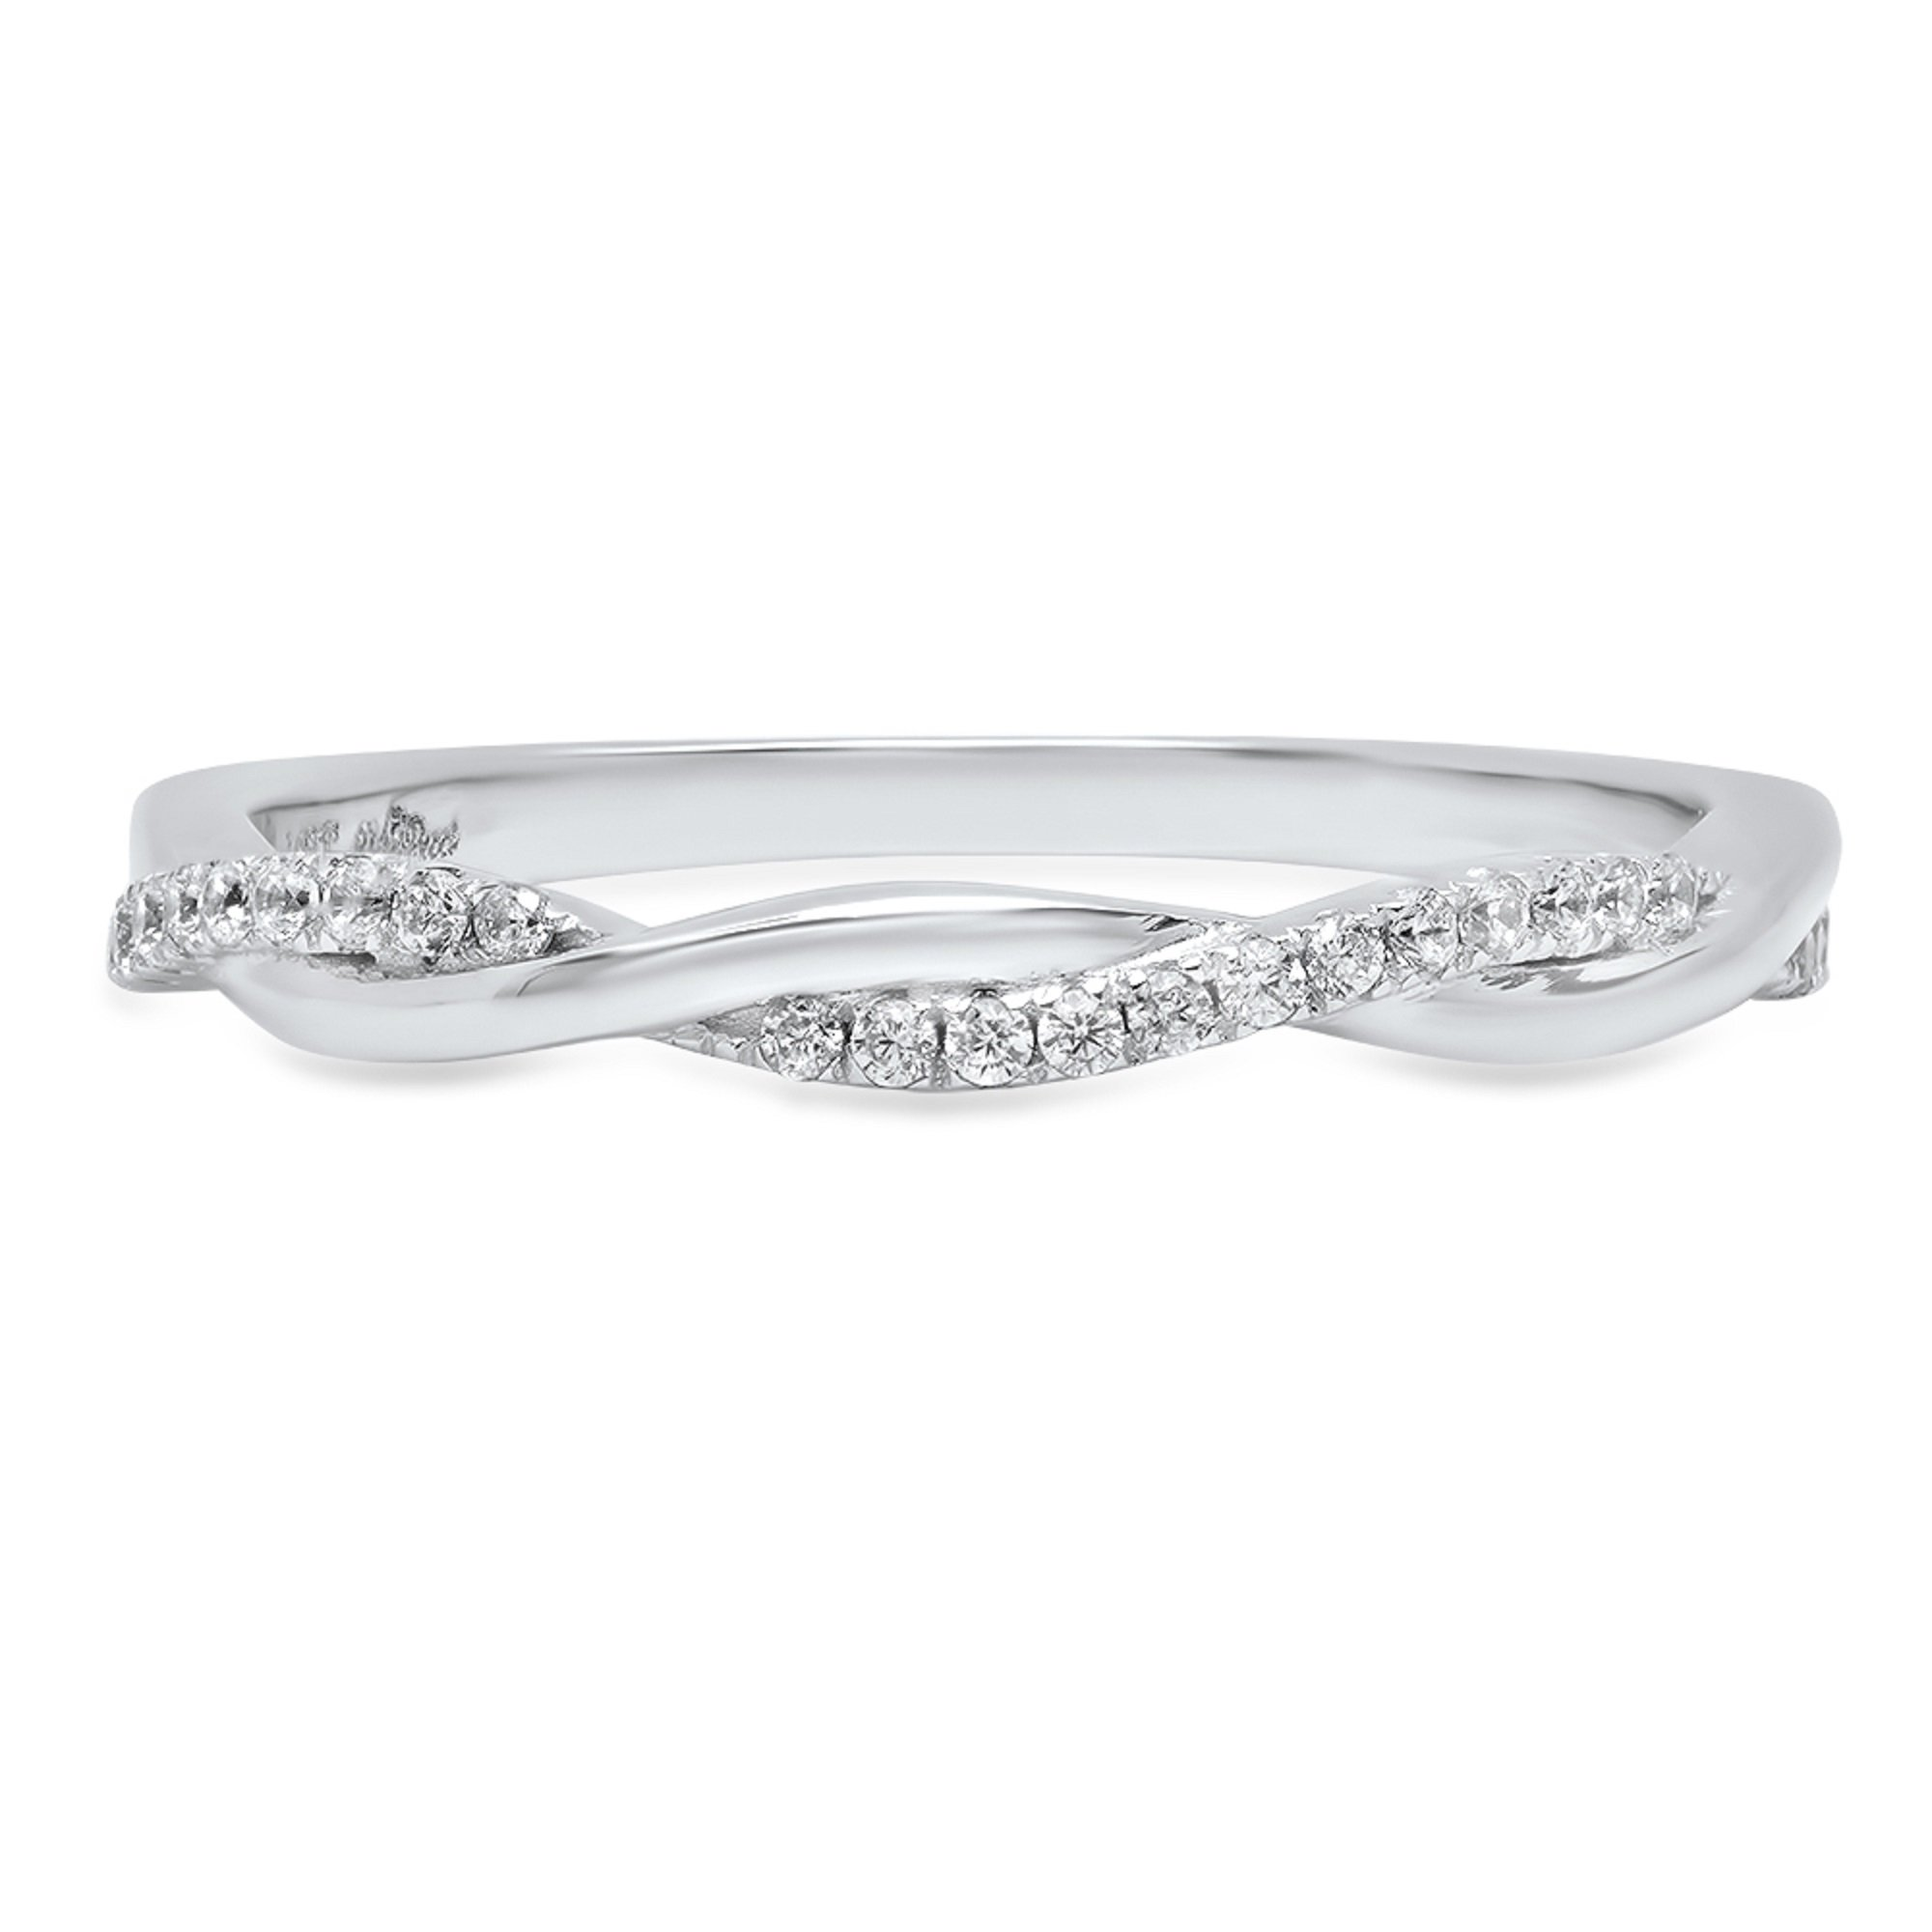 Clara Pucci 0.22ct Brilliant Round Cut Solitaire Stackable Bridal Wedding Promise Anniversary Band 14k Solid White Gold, 5.5